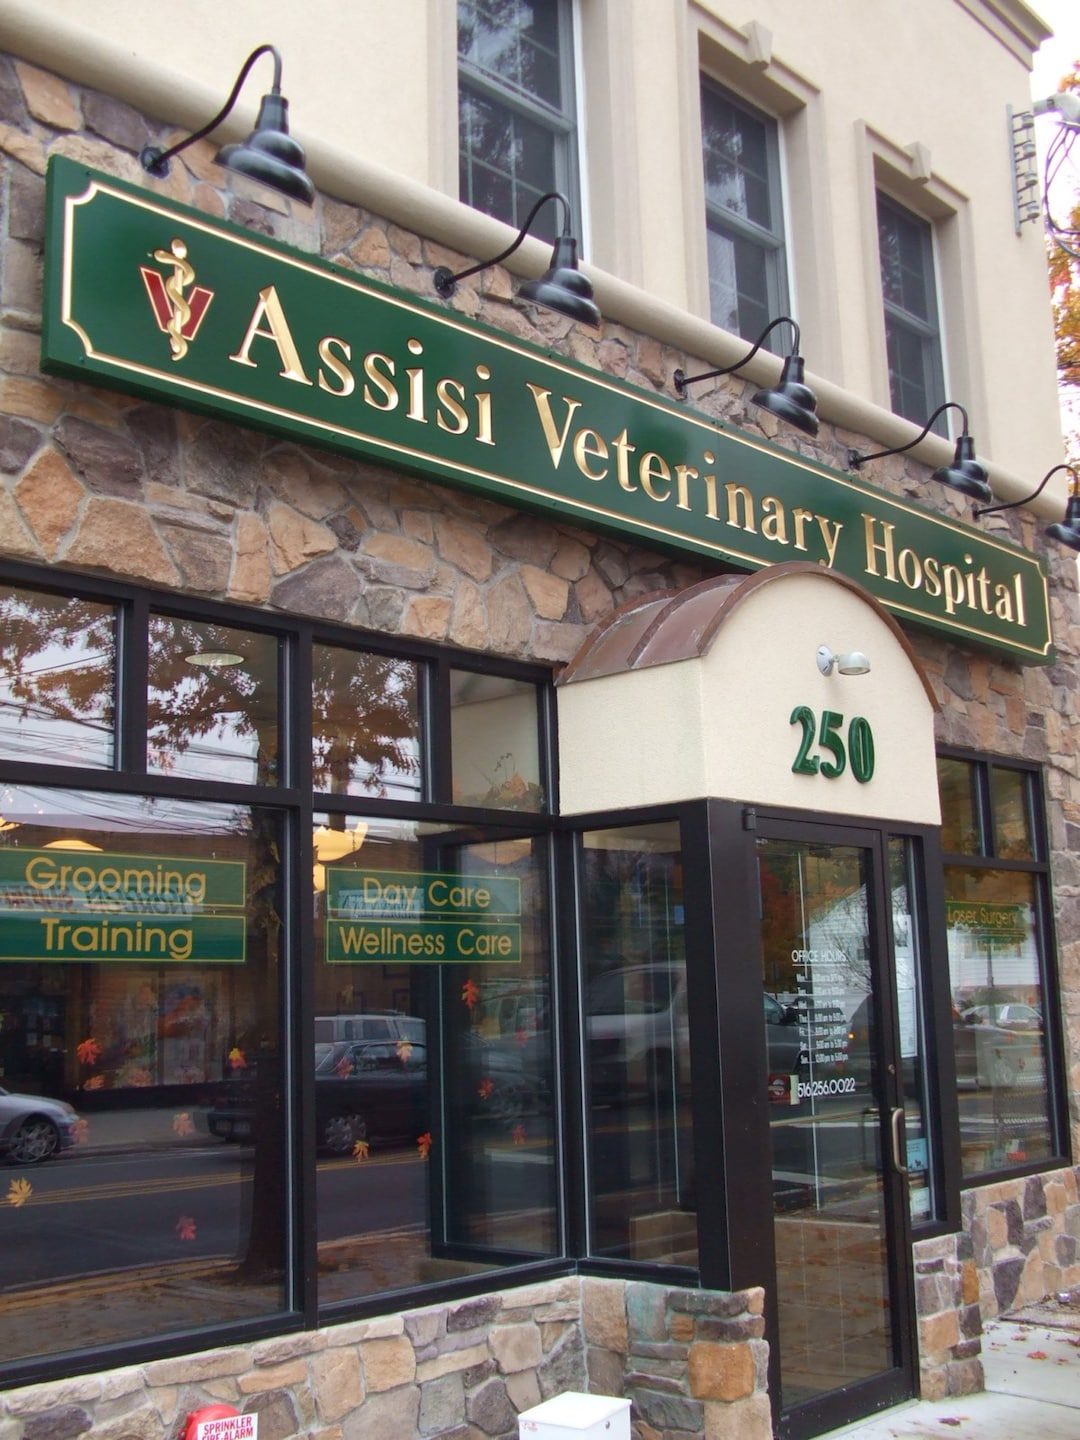 ASSISI VETERINARY HOSPITAL